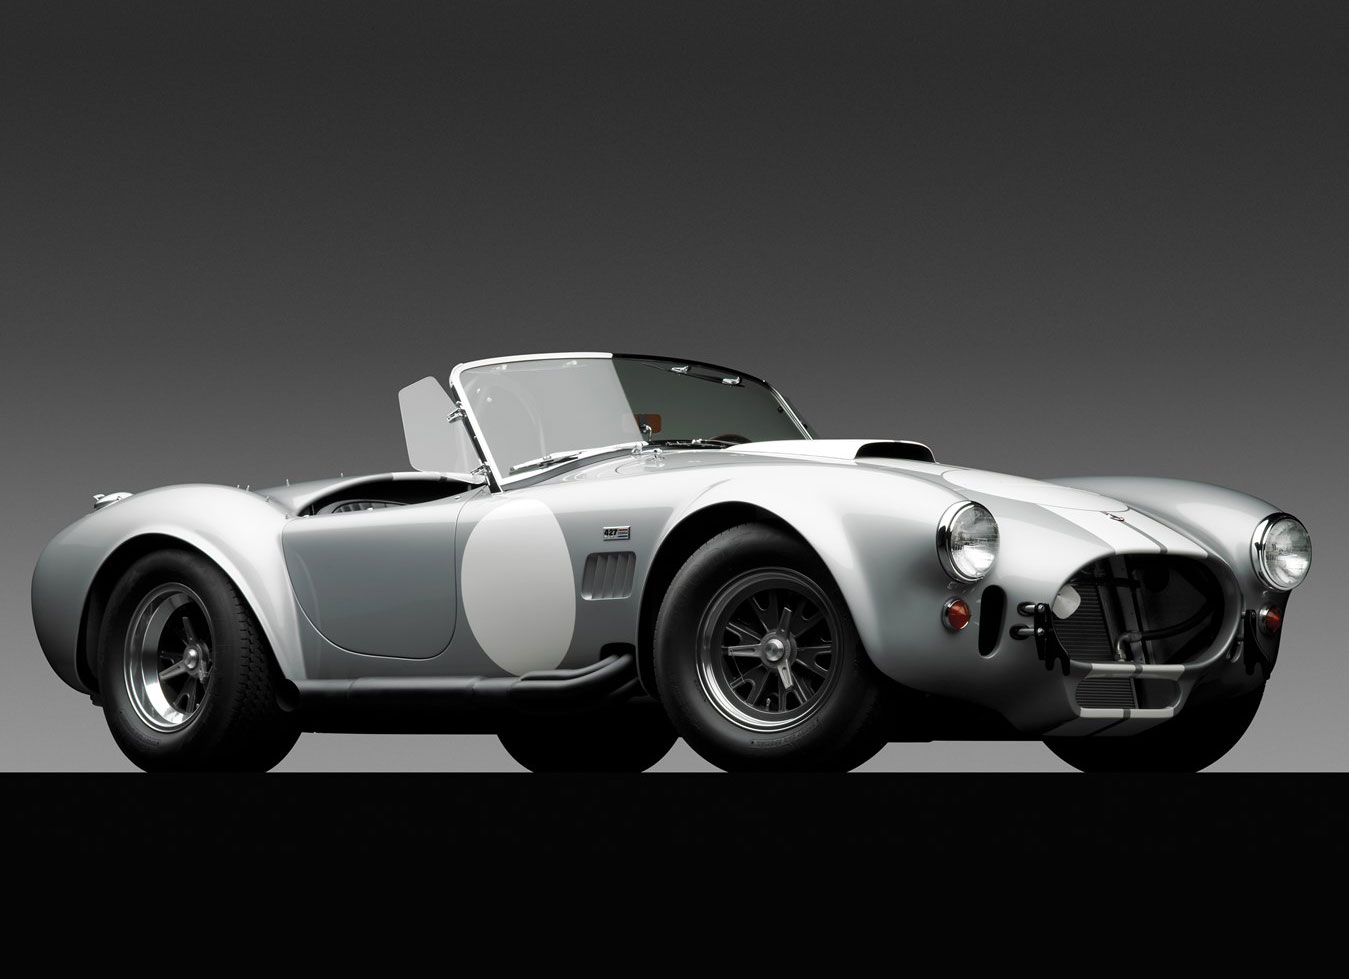 1966 Shelby Cobra 427 S/C Roadster